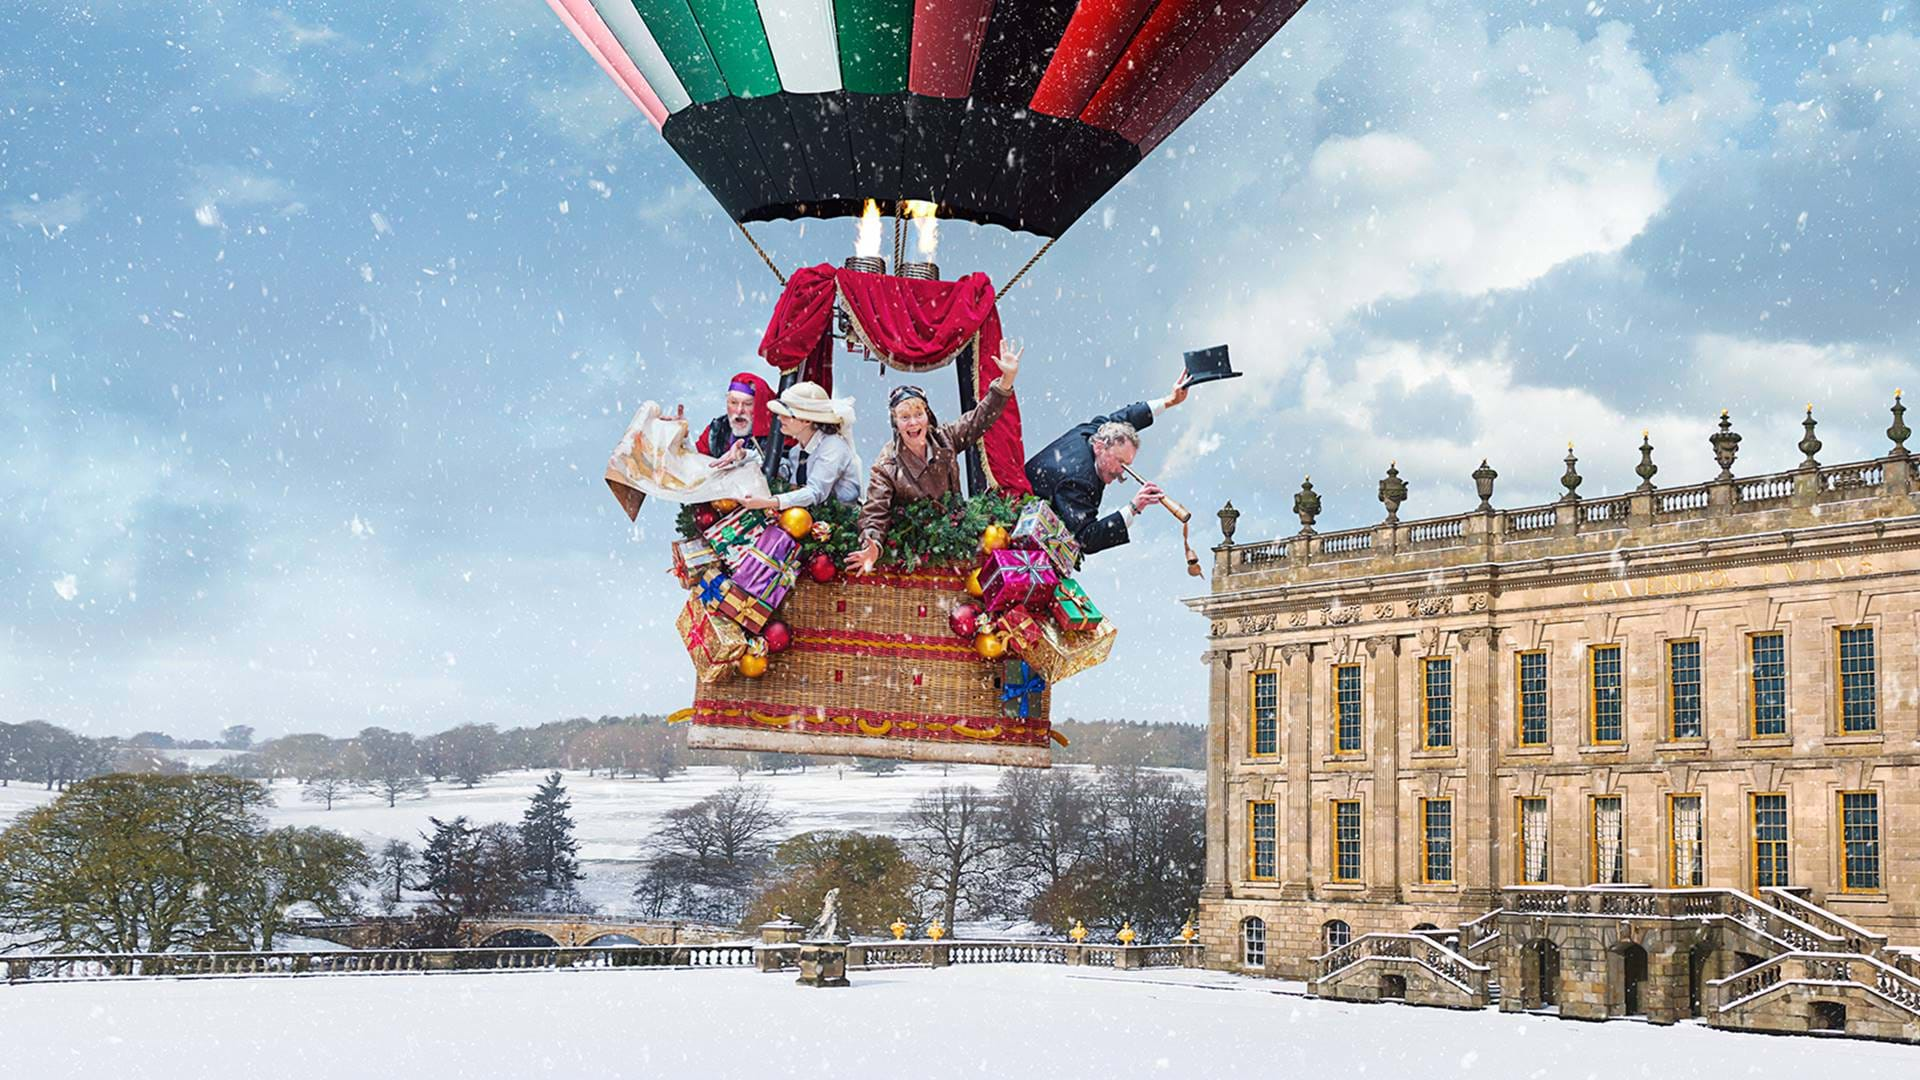 Magical Christmas Places, Chatsworth House, exterior with hot air balloon and snow